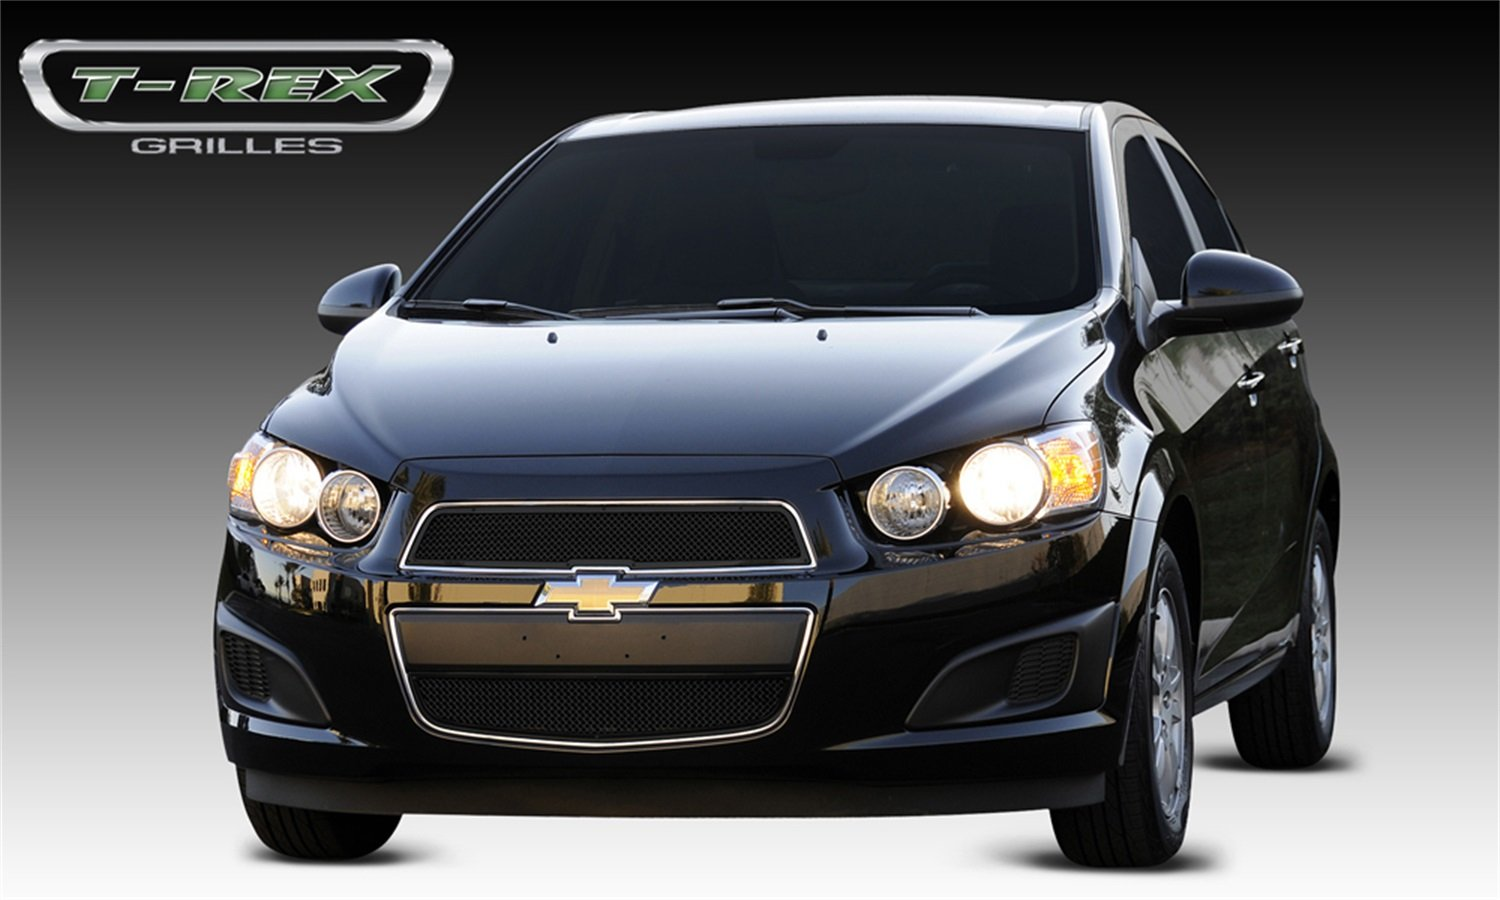 T-Rex Grilles 51132 Upper Class Small Mesh Steel Black Finish Grille Overlay for Chevrolet Sonic